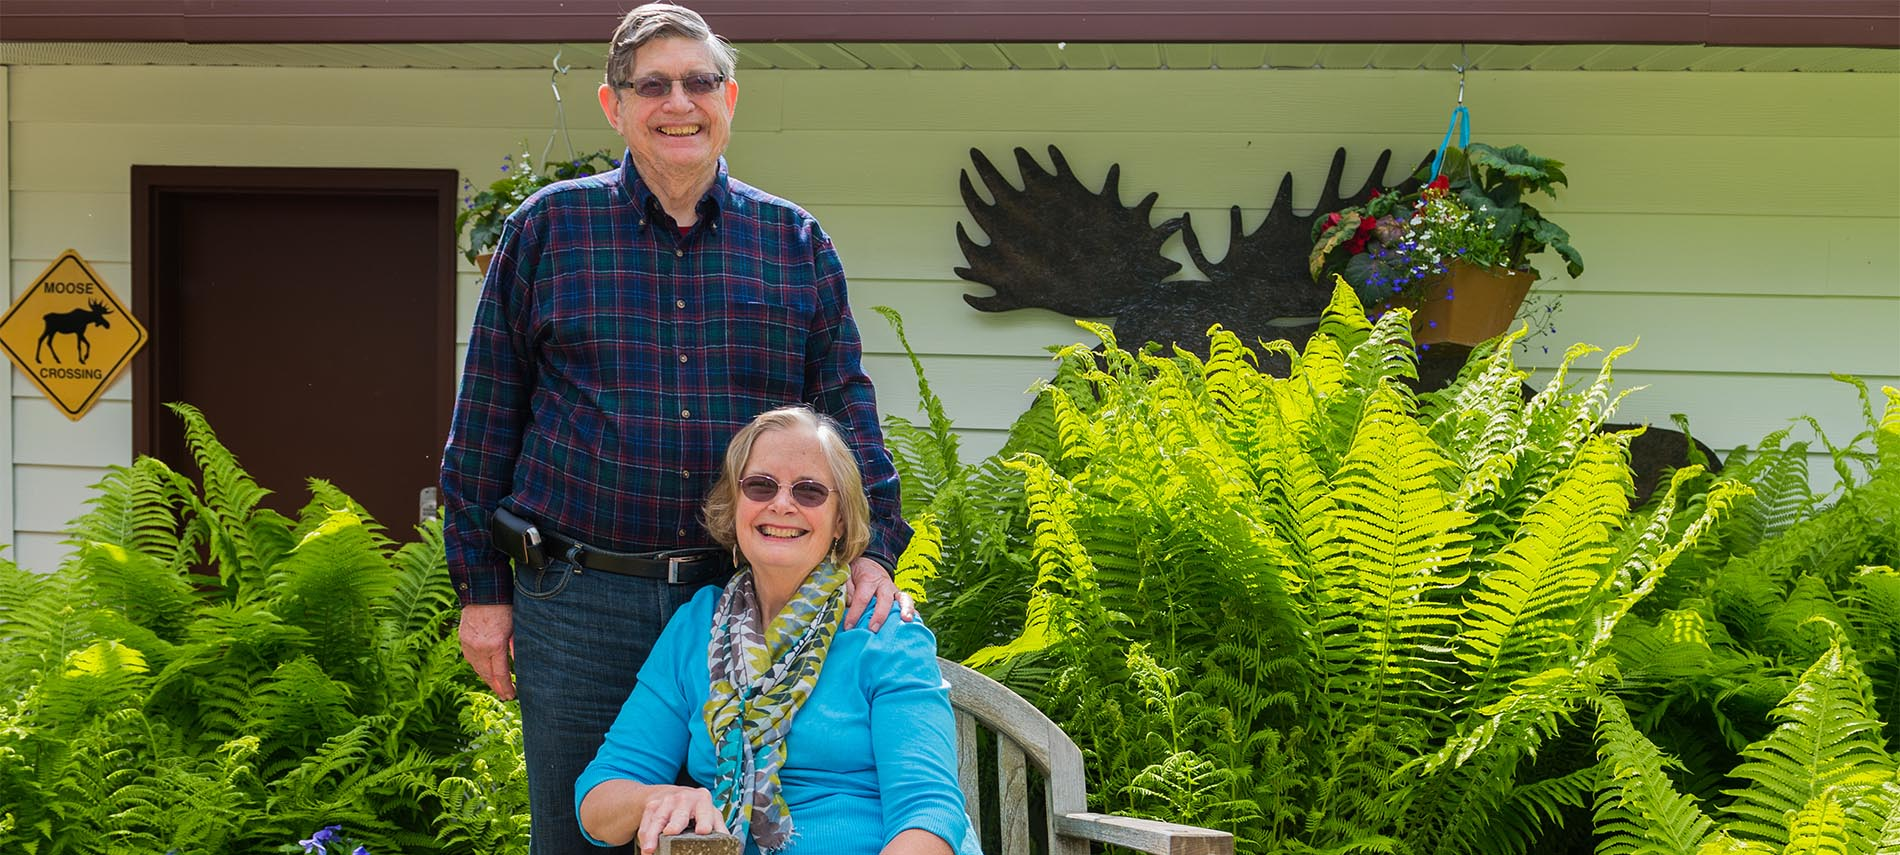 Craig standing next to Caroline seated in garden with lush green ferns and moose silhouette in background